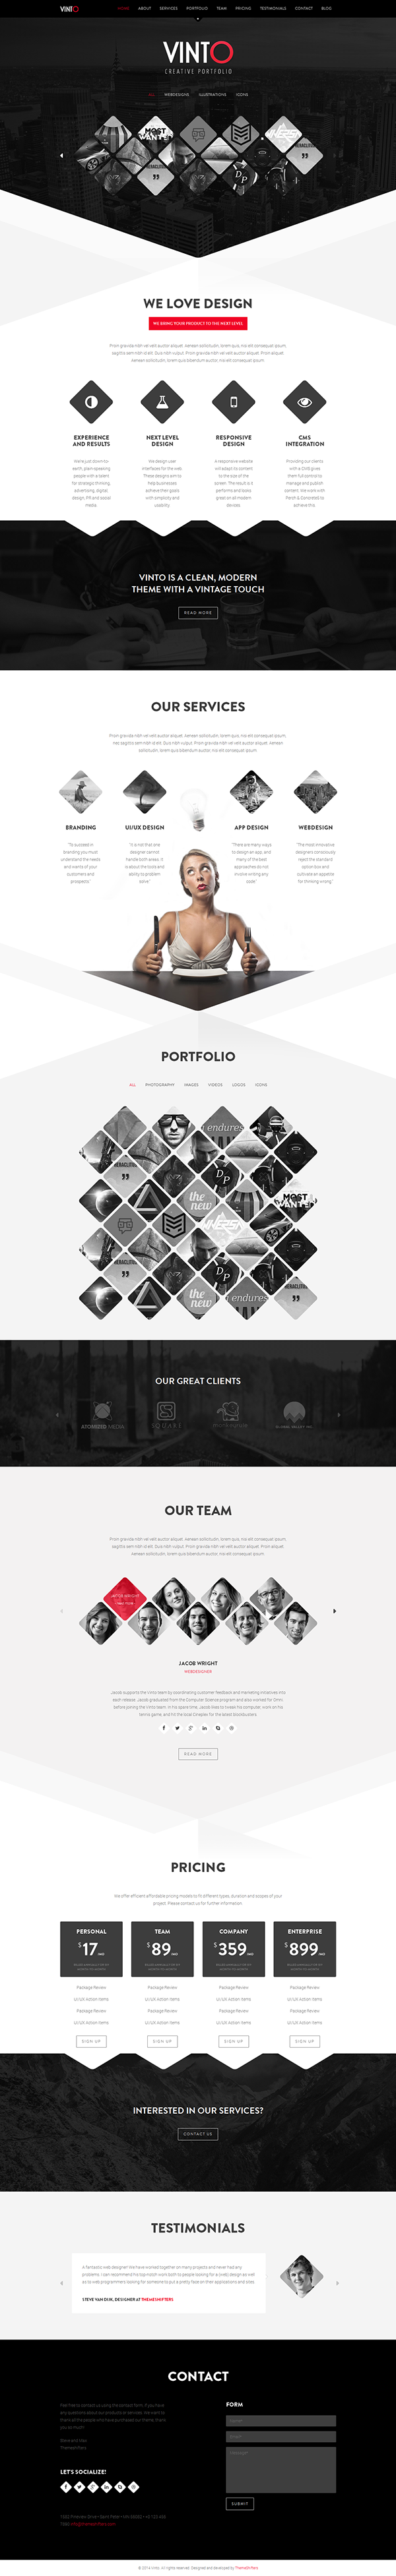 vinto one page html template on behance